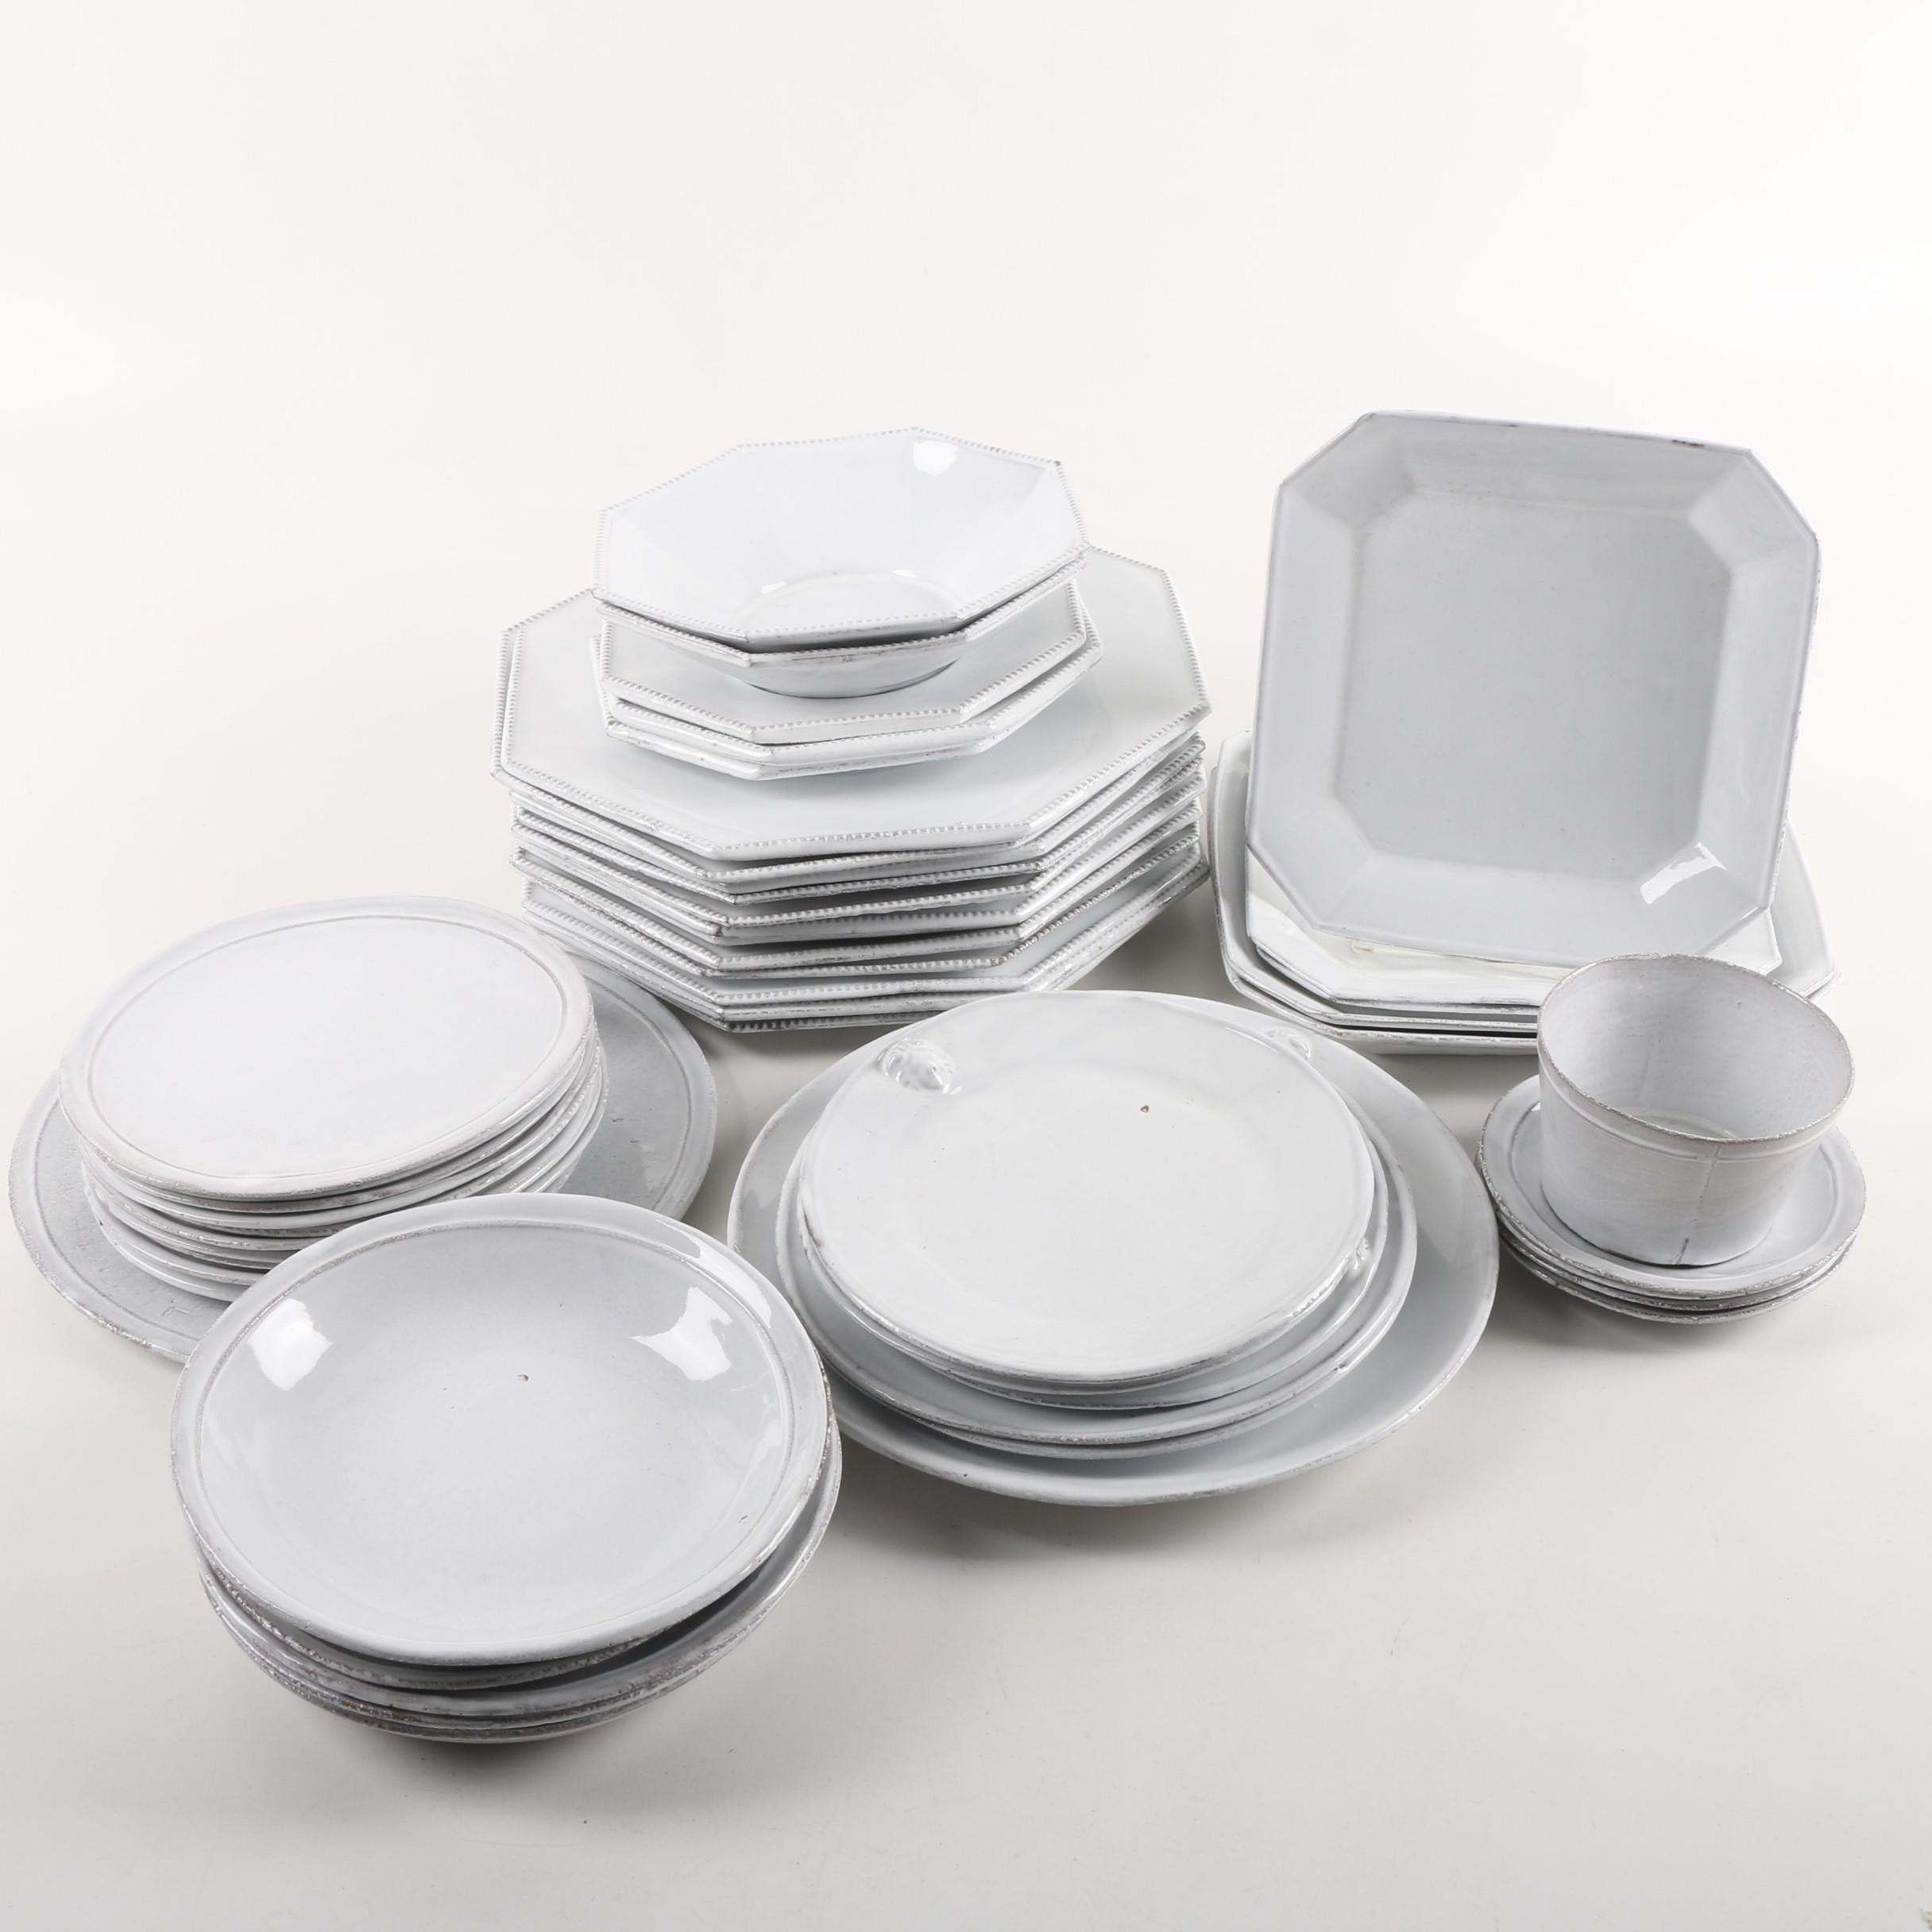 """Astier de Villatte French Handcrafted Terracotta Tableware Featuring """"Simple"""""""